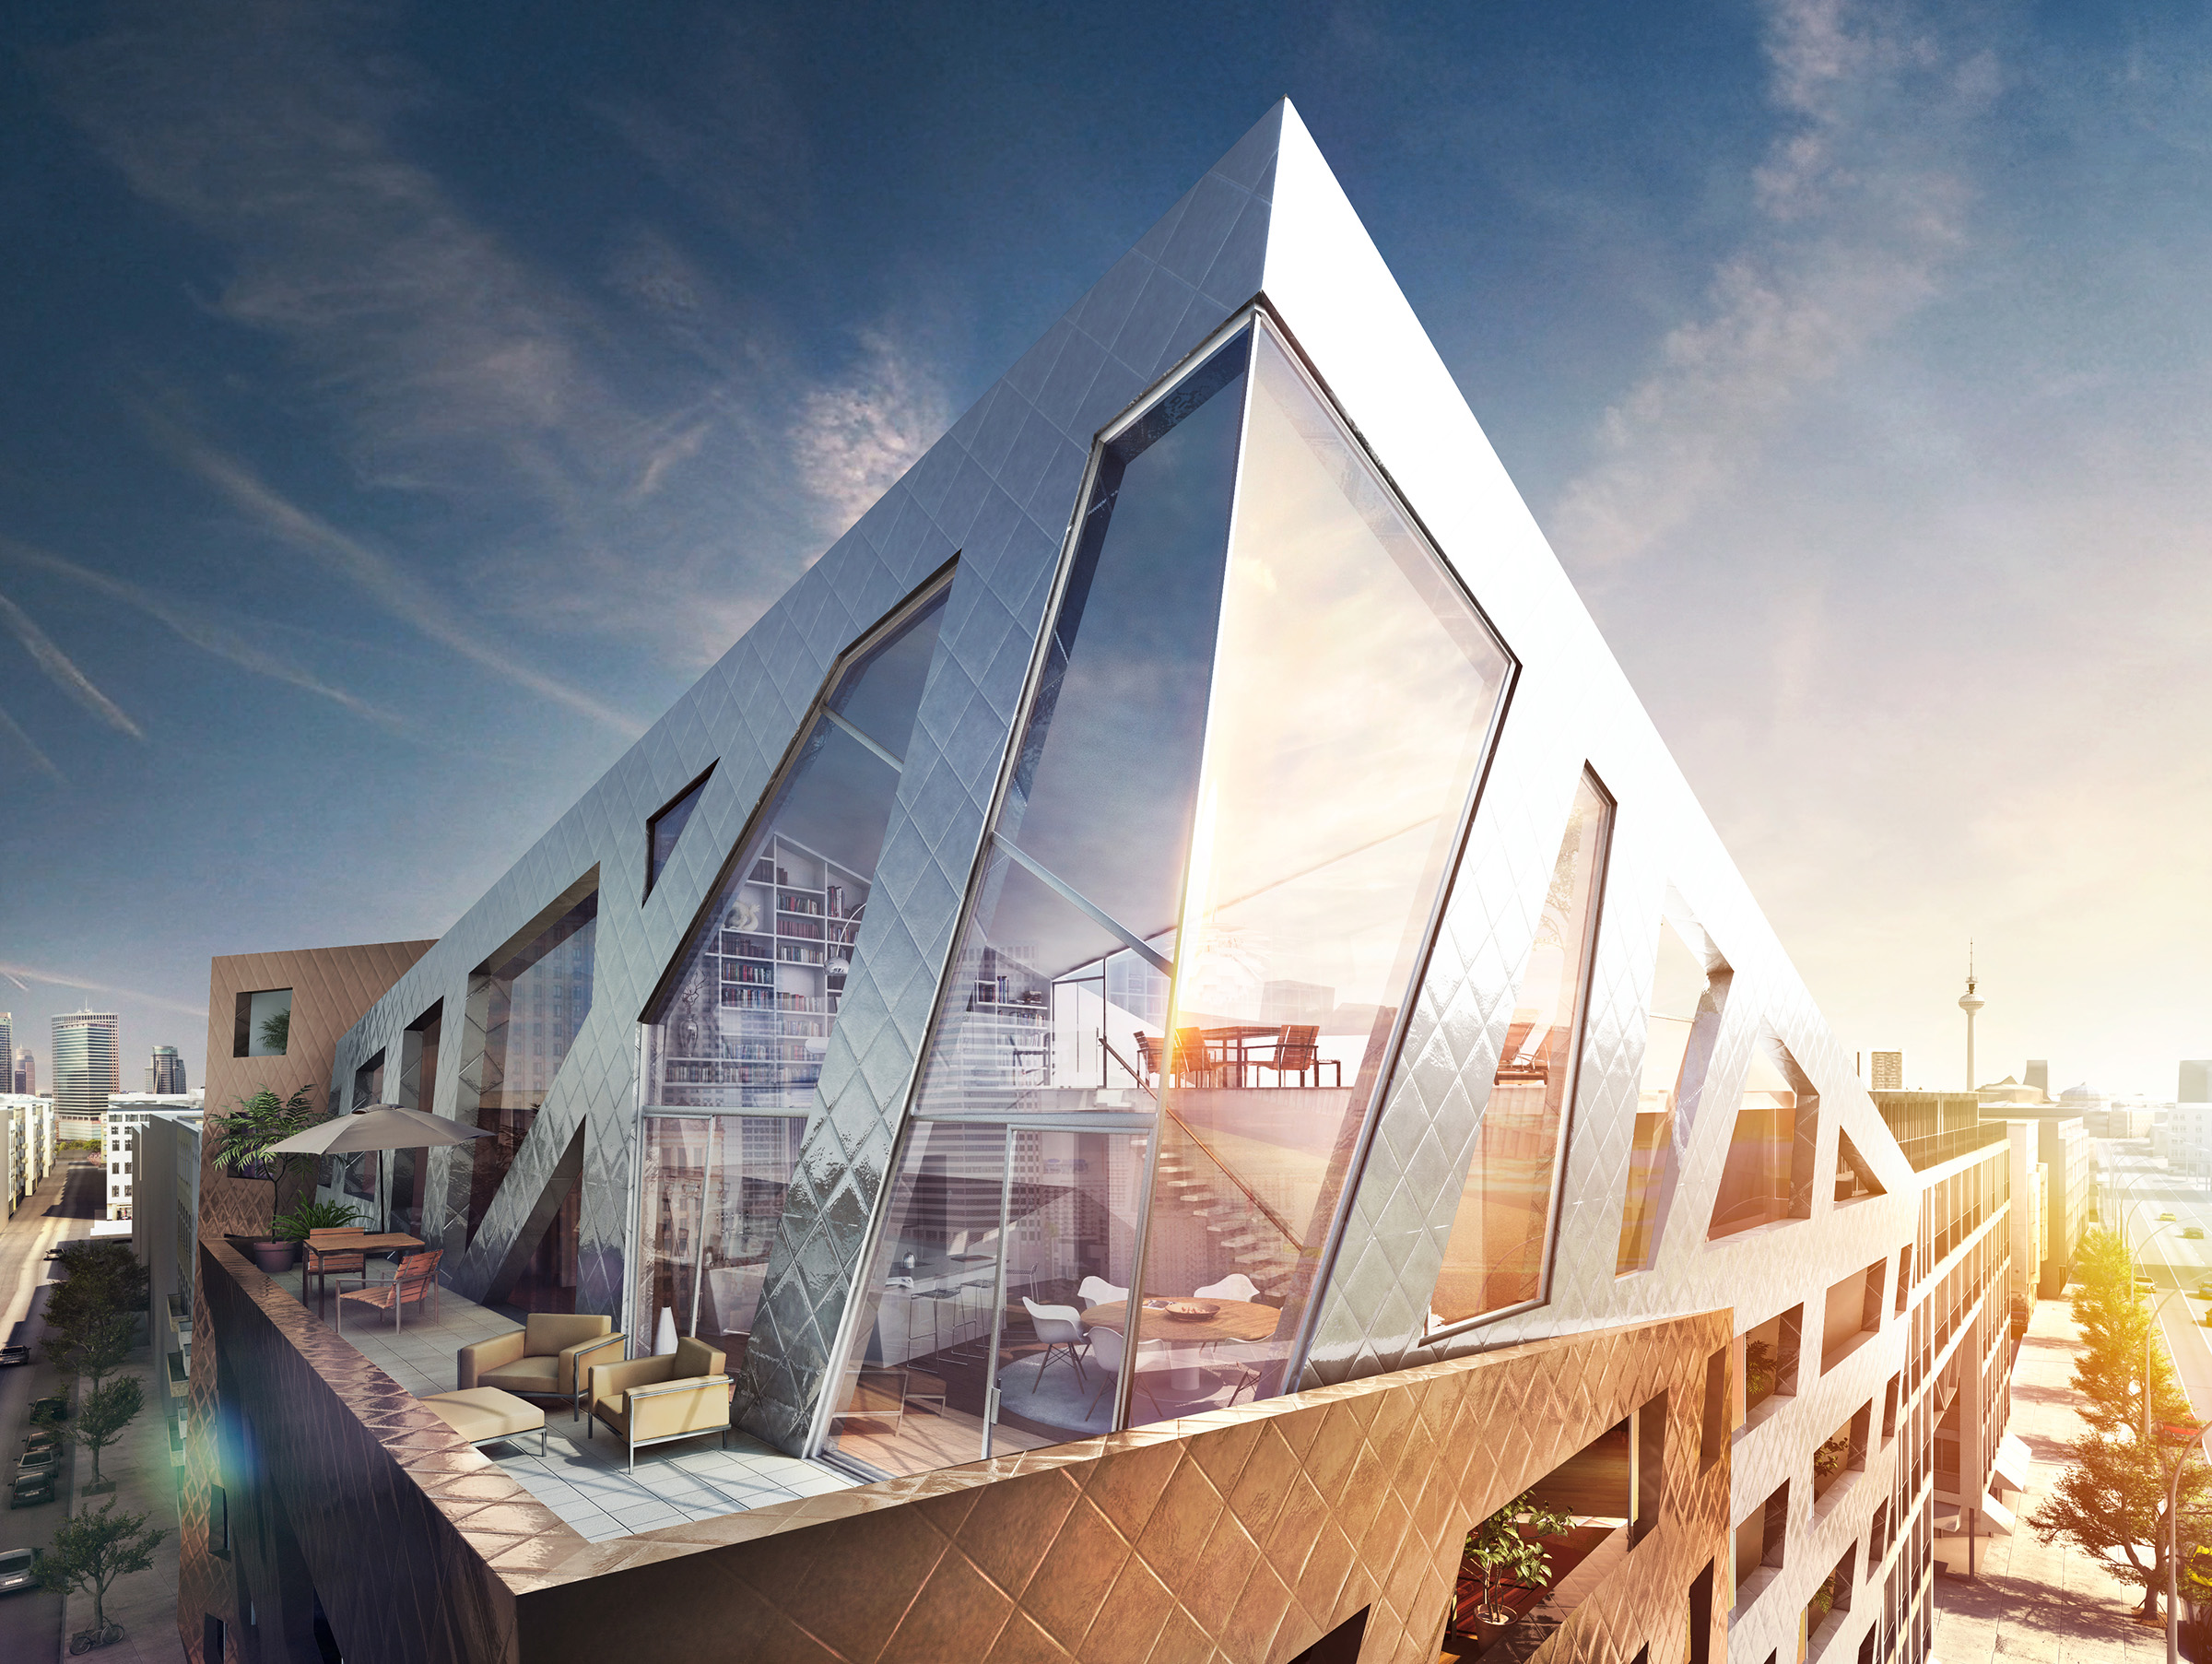 Daniel Libeskind | Full CGI | Agency unit III consulting